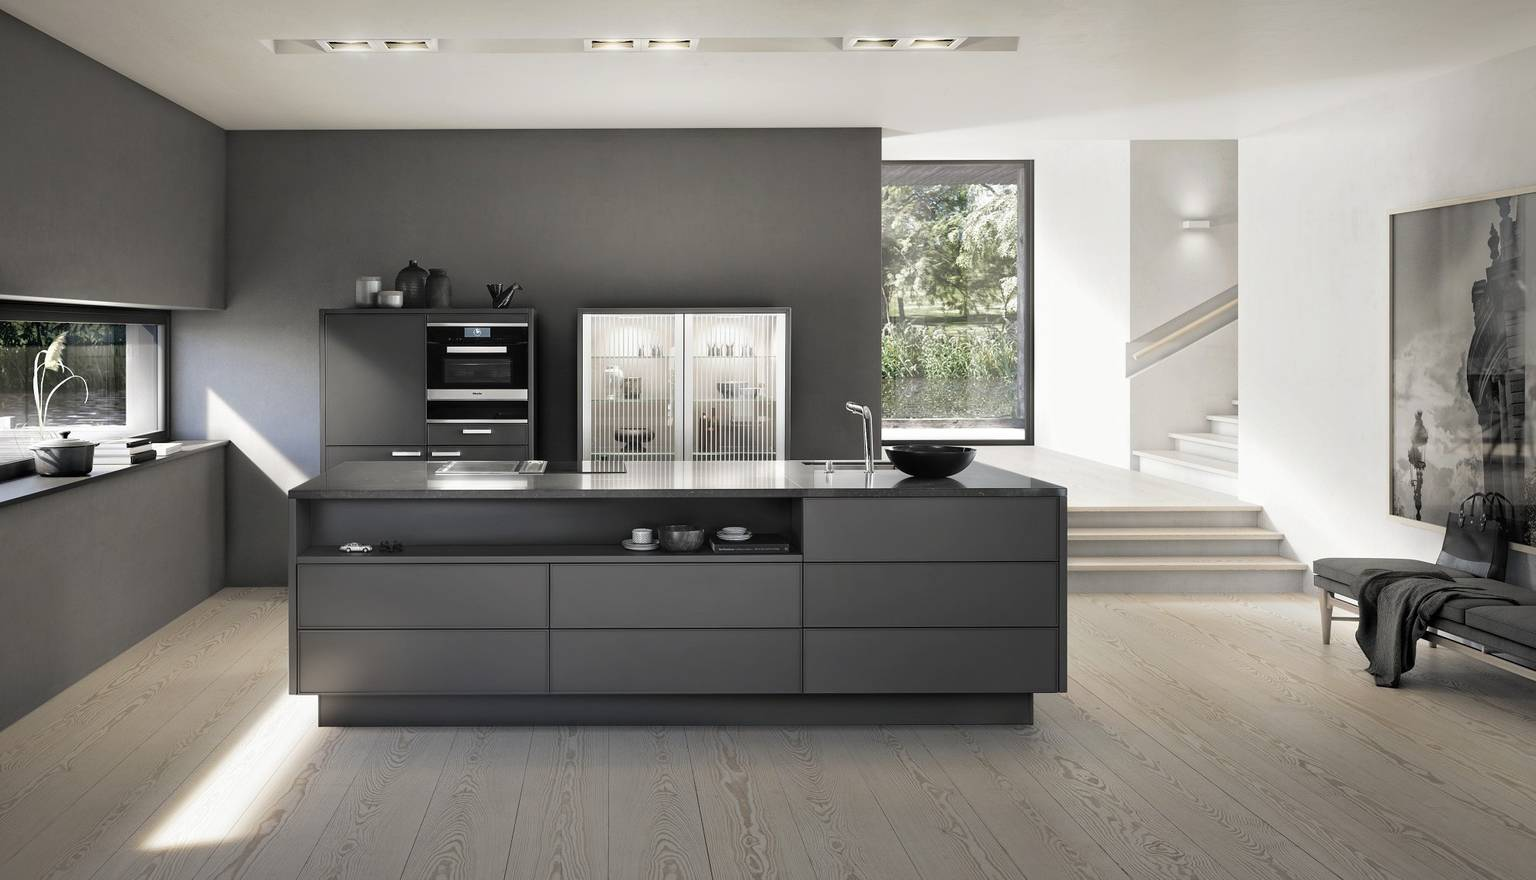 Guarda la SieMatic Pure SE 3003 R in laccato opaco umbra con isola.